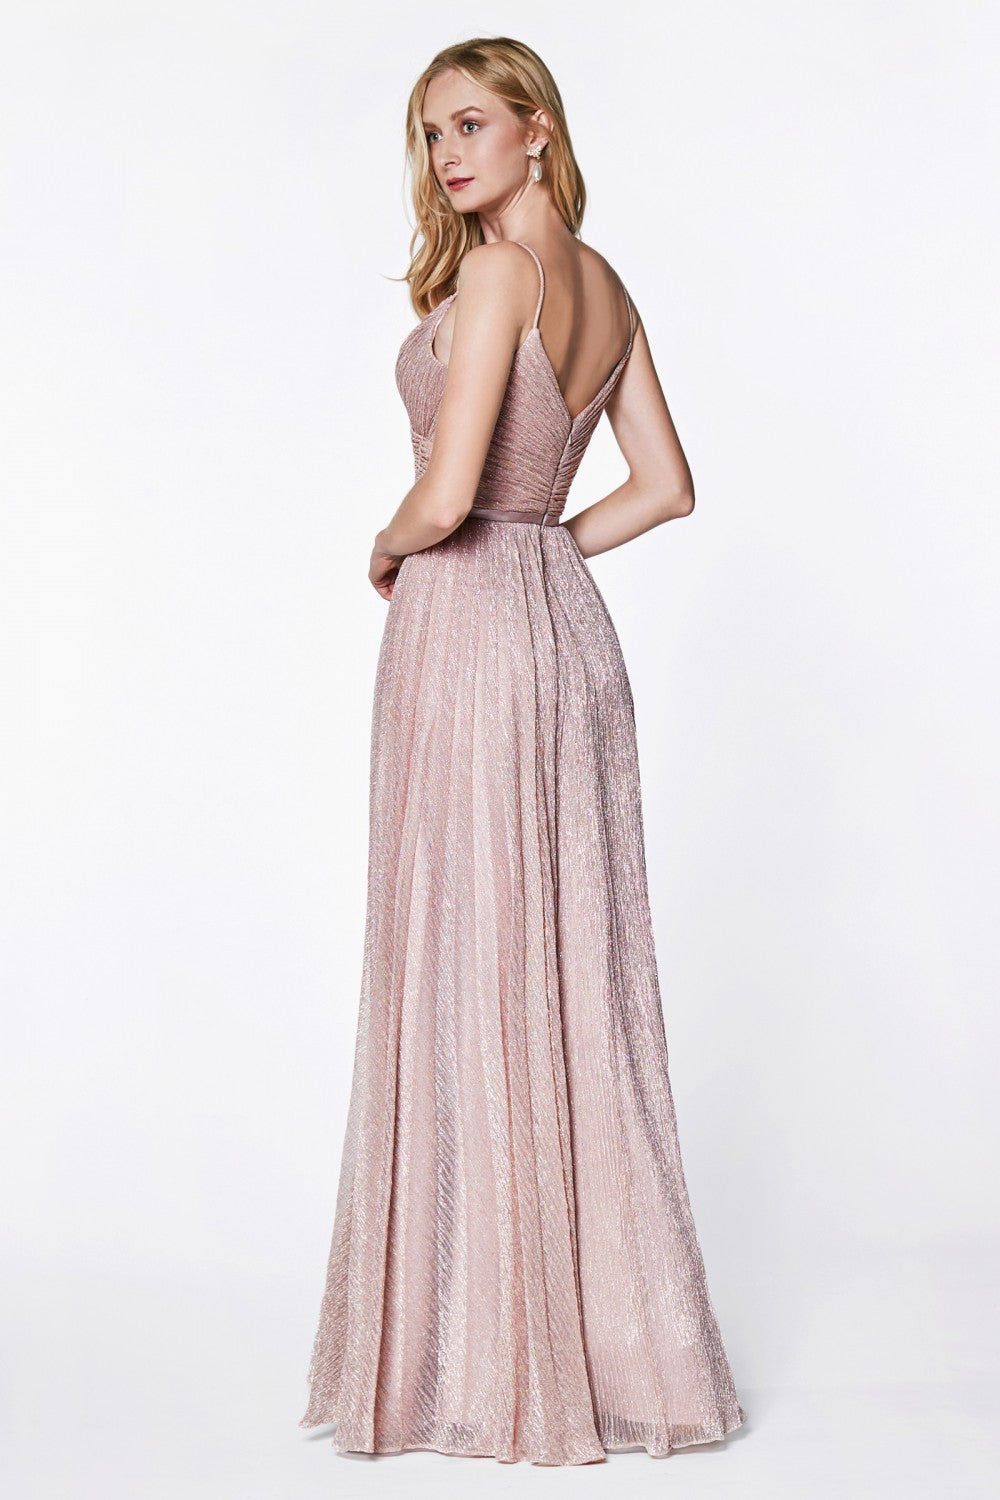 Metallic Stretch Knit Flowy A-Line Dress With Pleated Details And Satin Belt